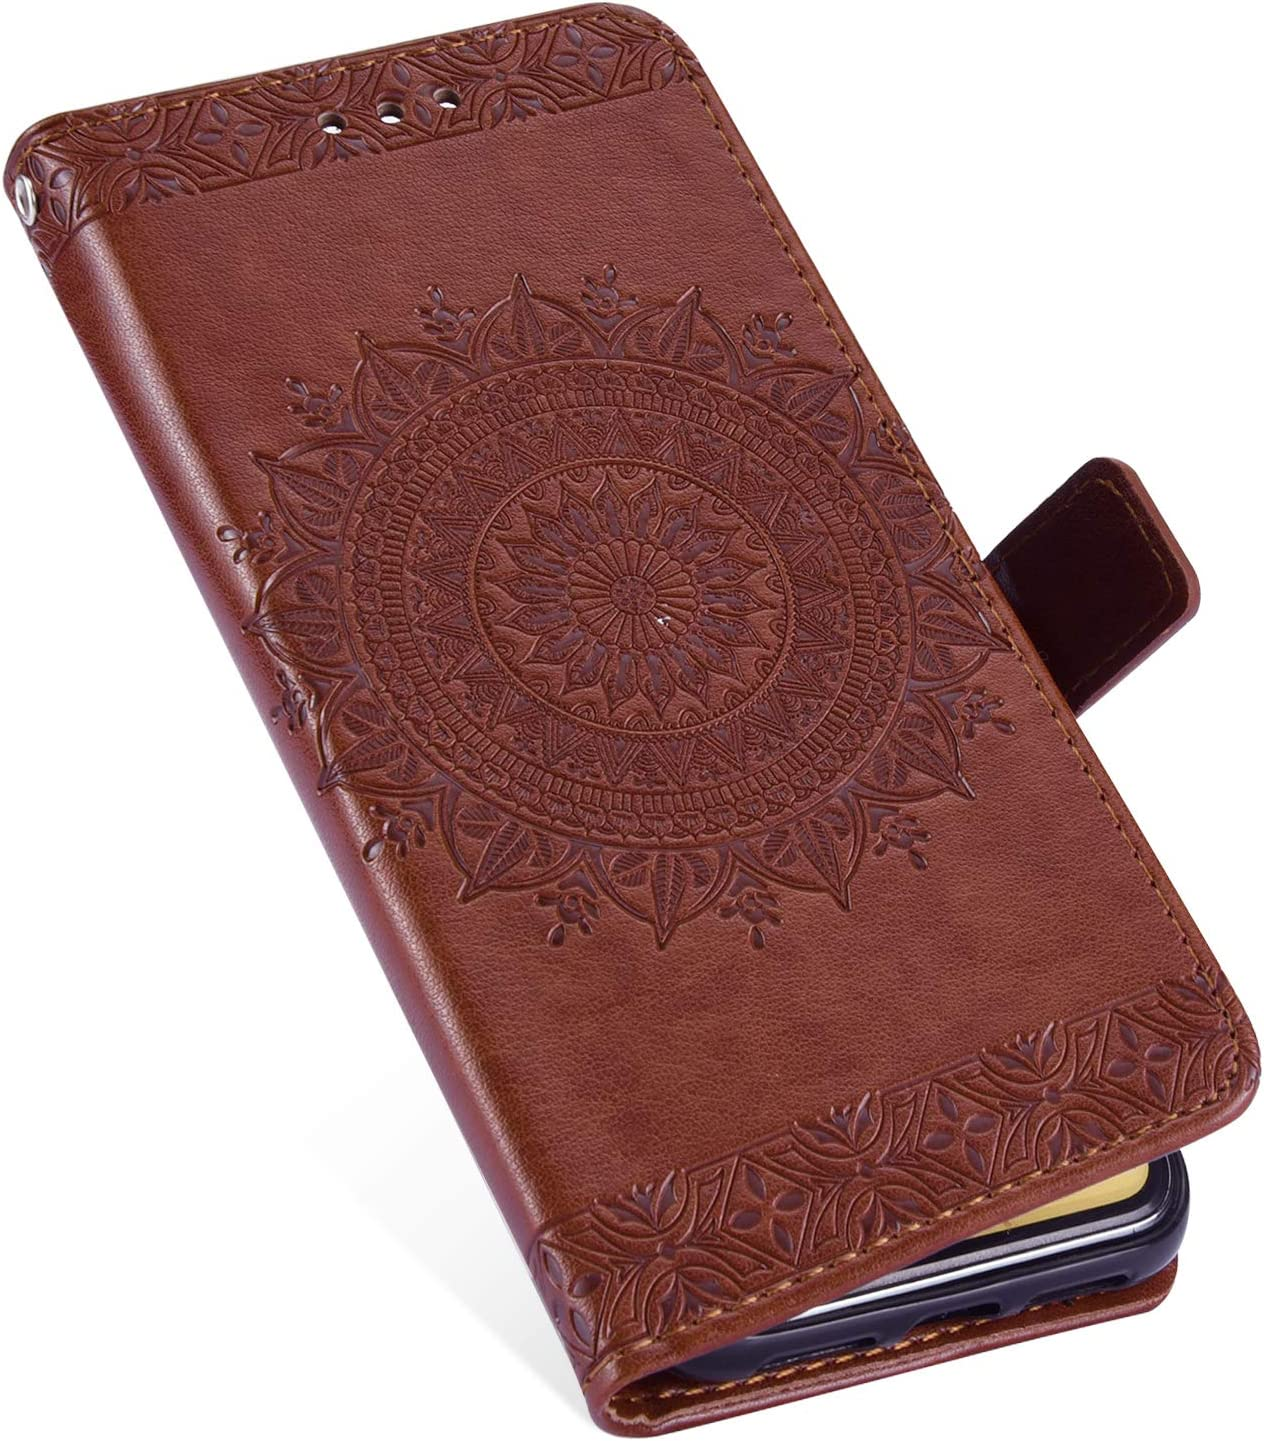 Herbests Compatible with Huawei P20 Pro Wallet Case Embossed Totem Mandala Flower Slim Folio Leather Cover Wallet Bookstyle Magnetic Flip Stand Cover Case Slot Wrist Strap,Red